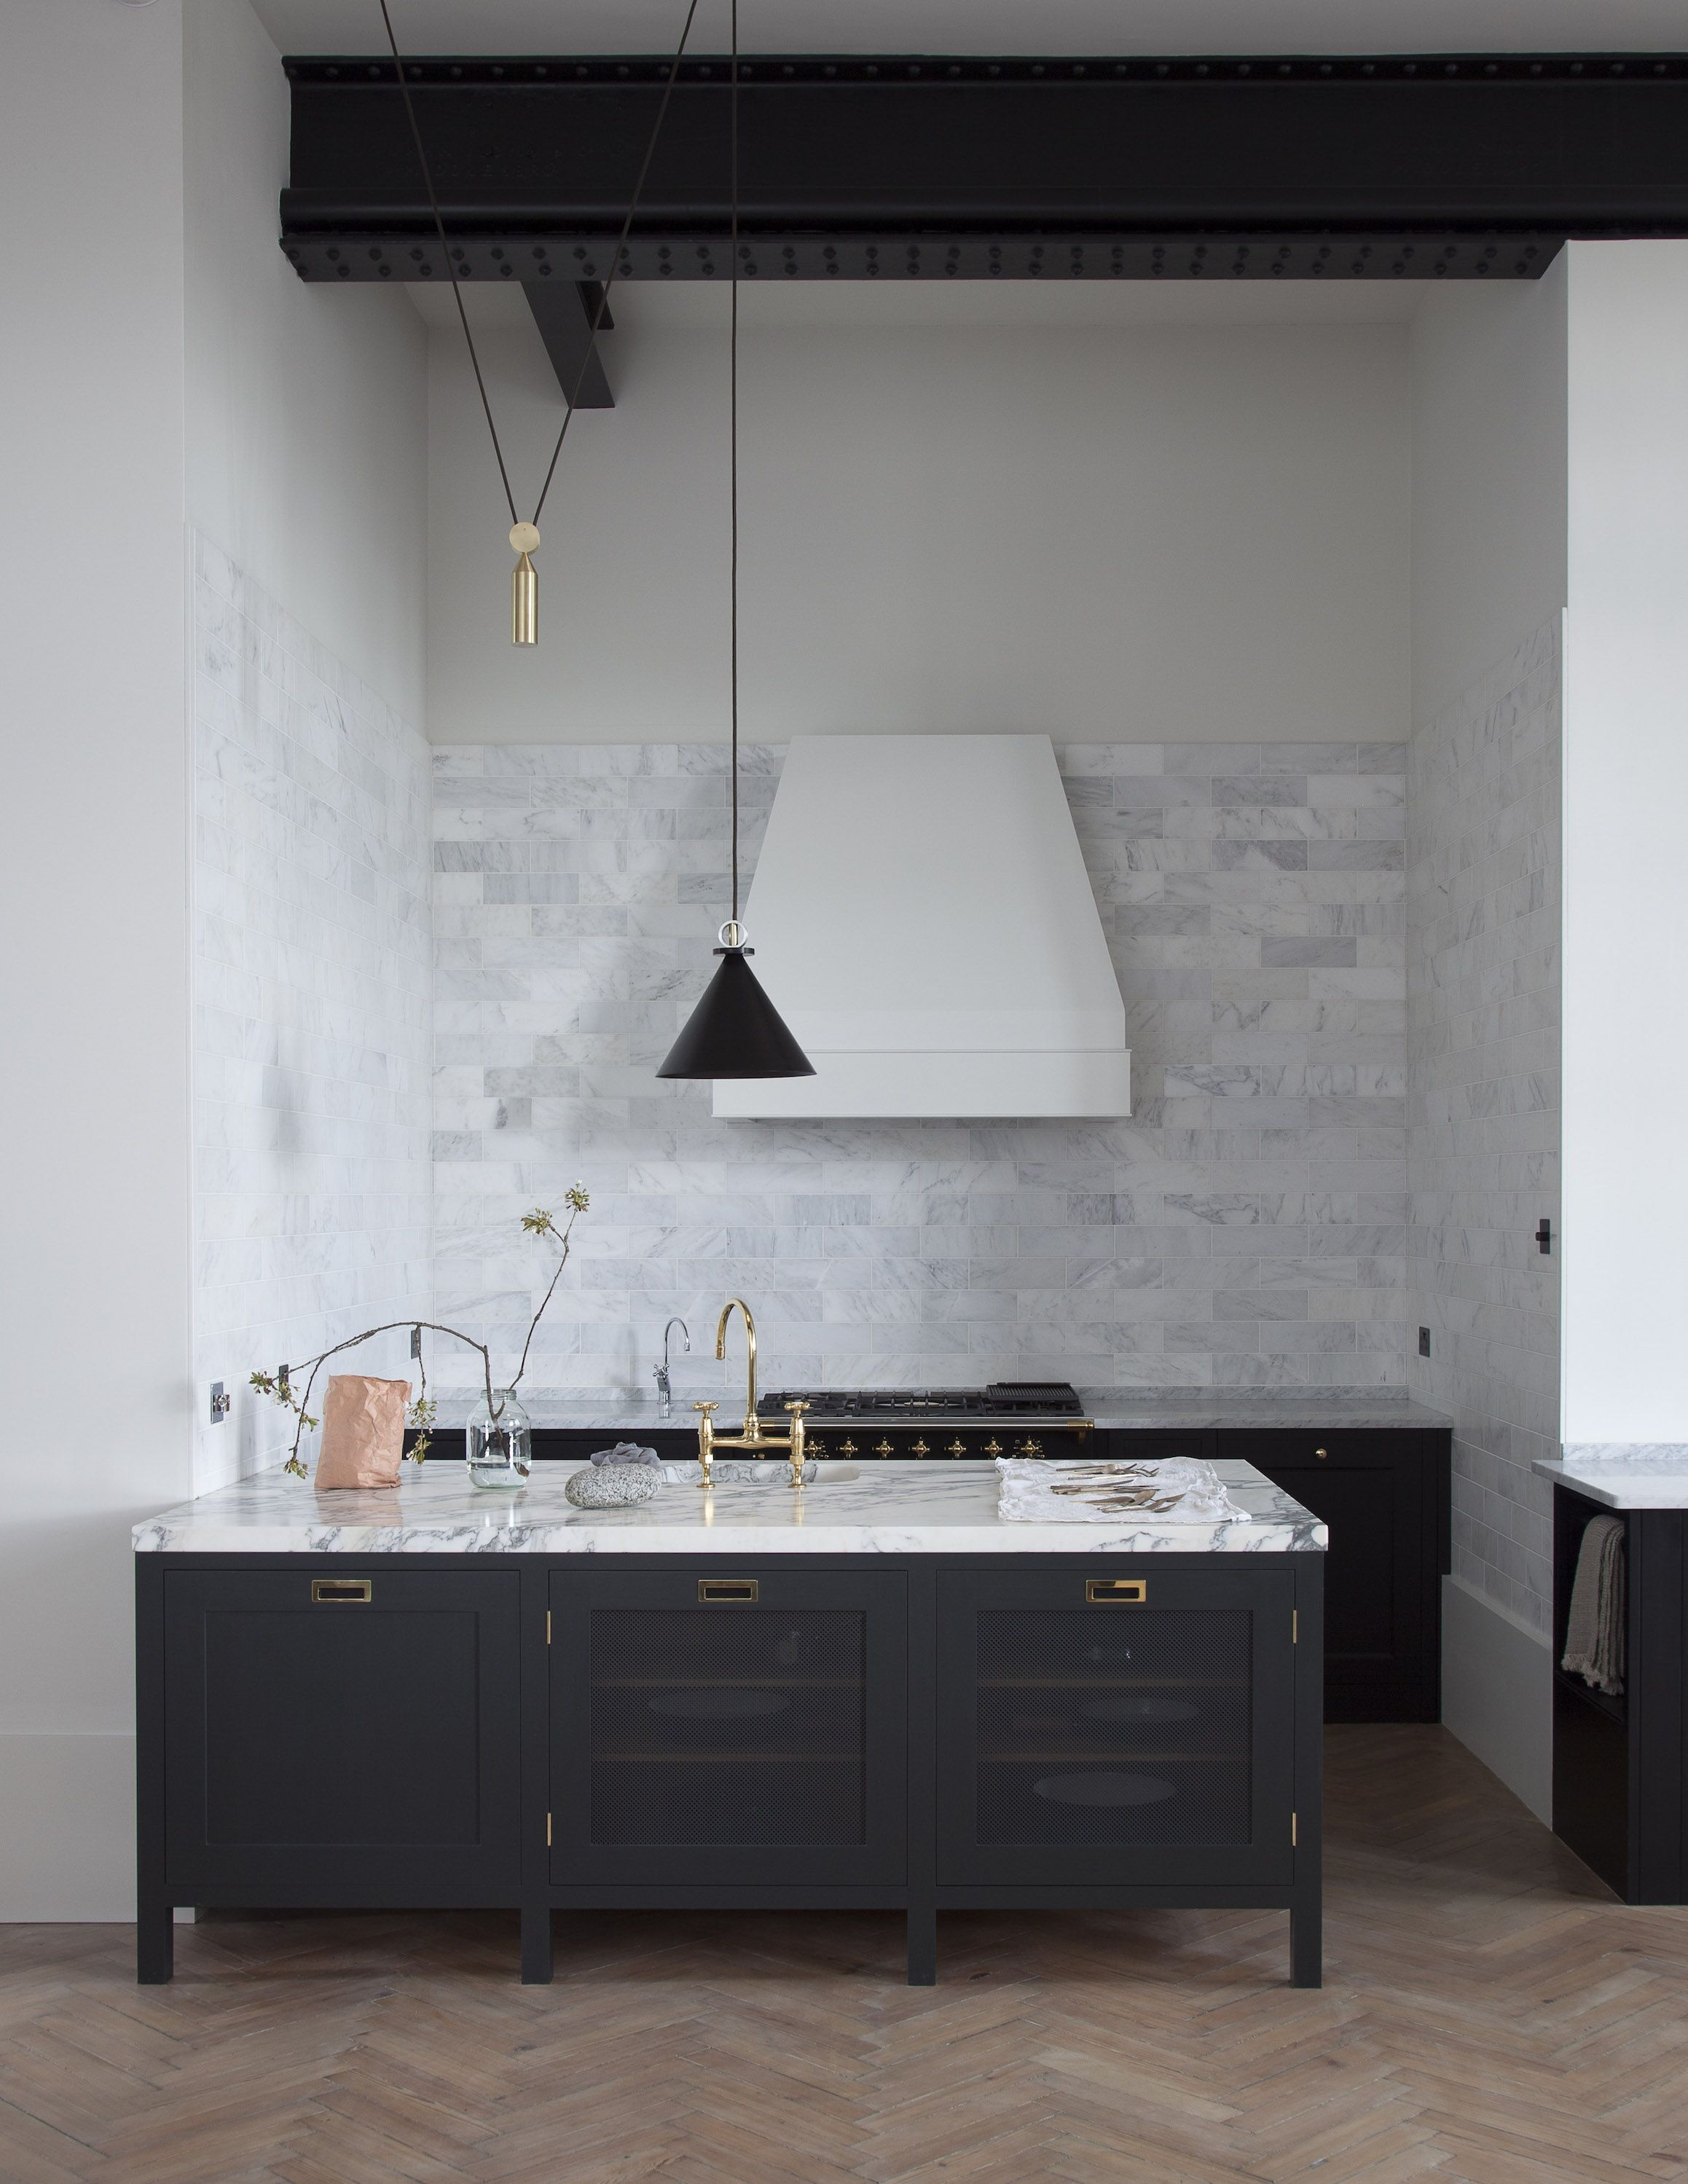 Now Available In The US: UK Design Company Plain Englishu0027s Kitchens |  Remodelista